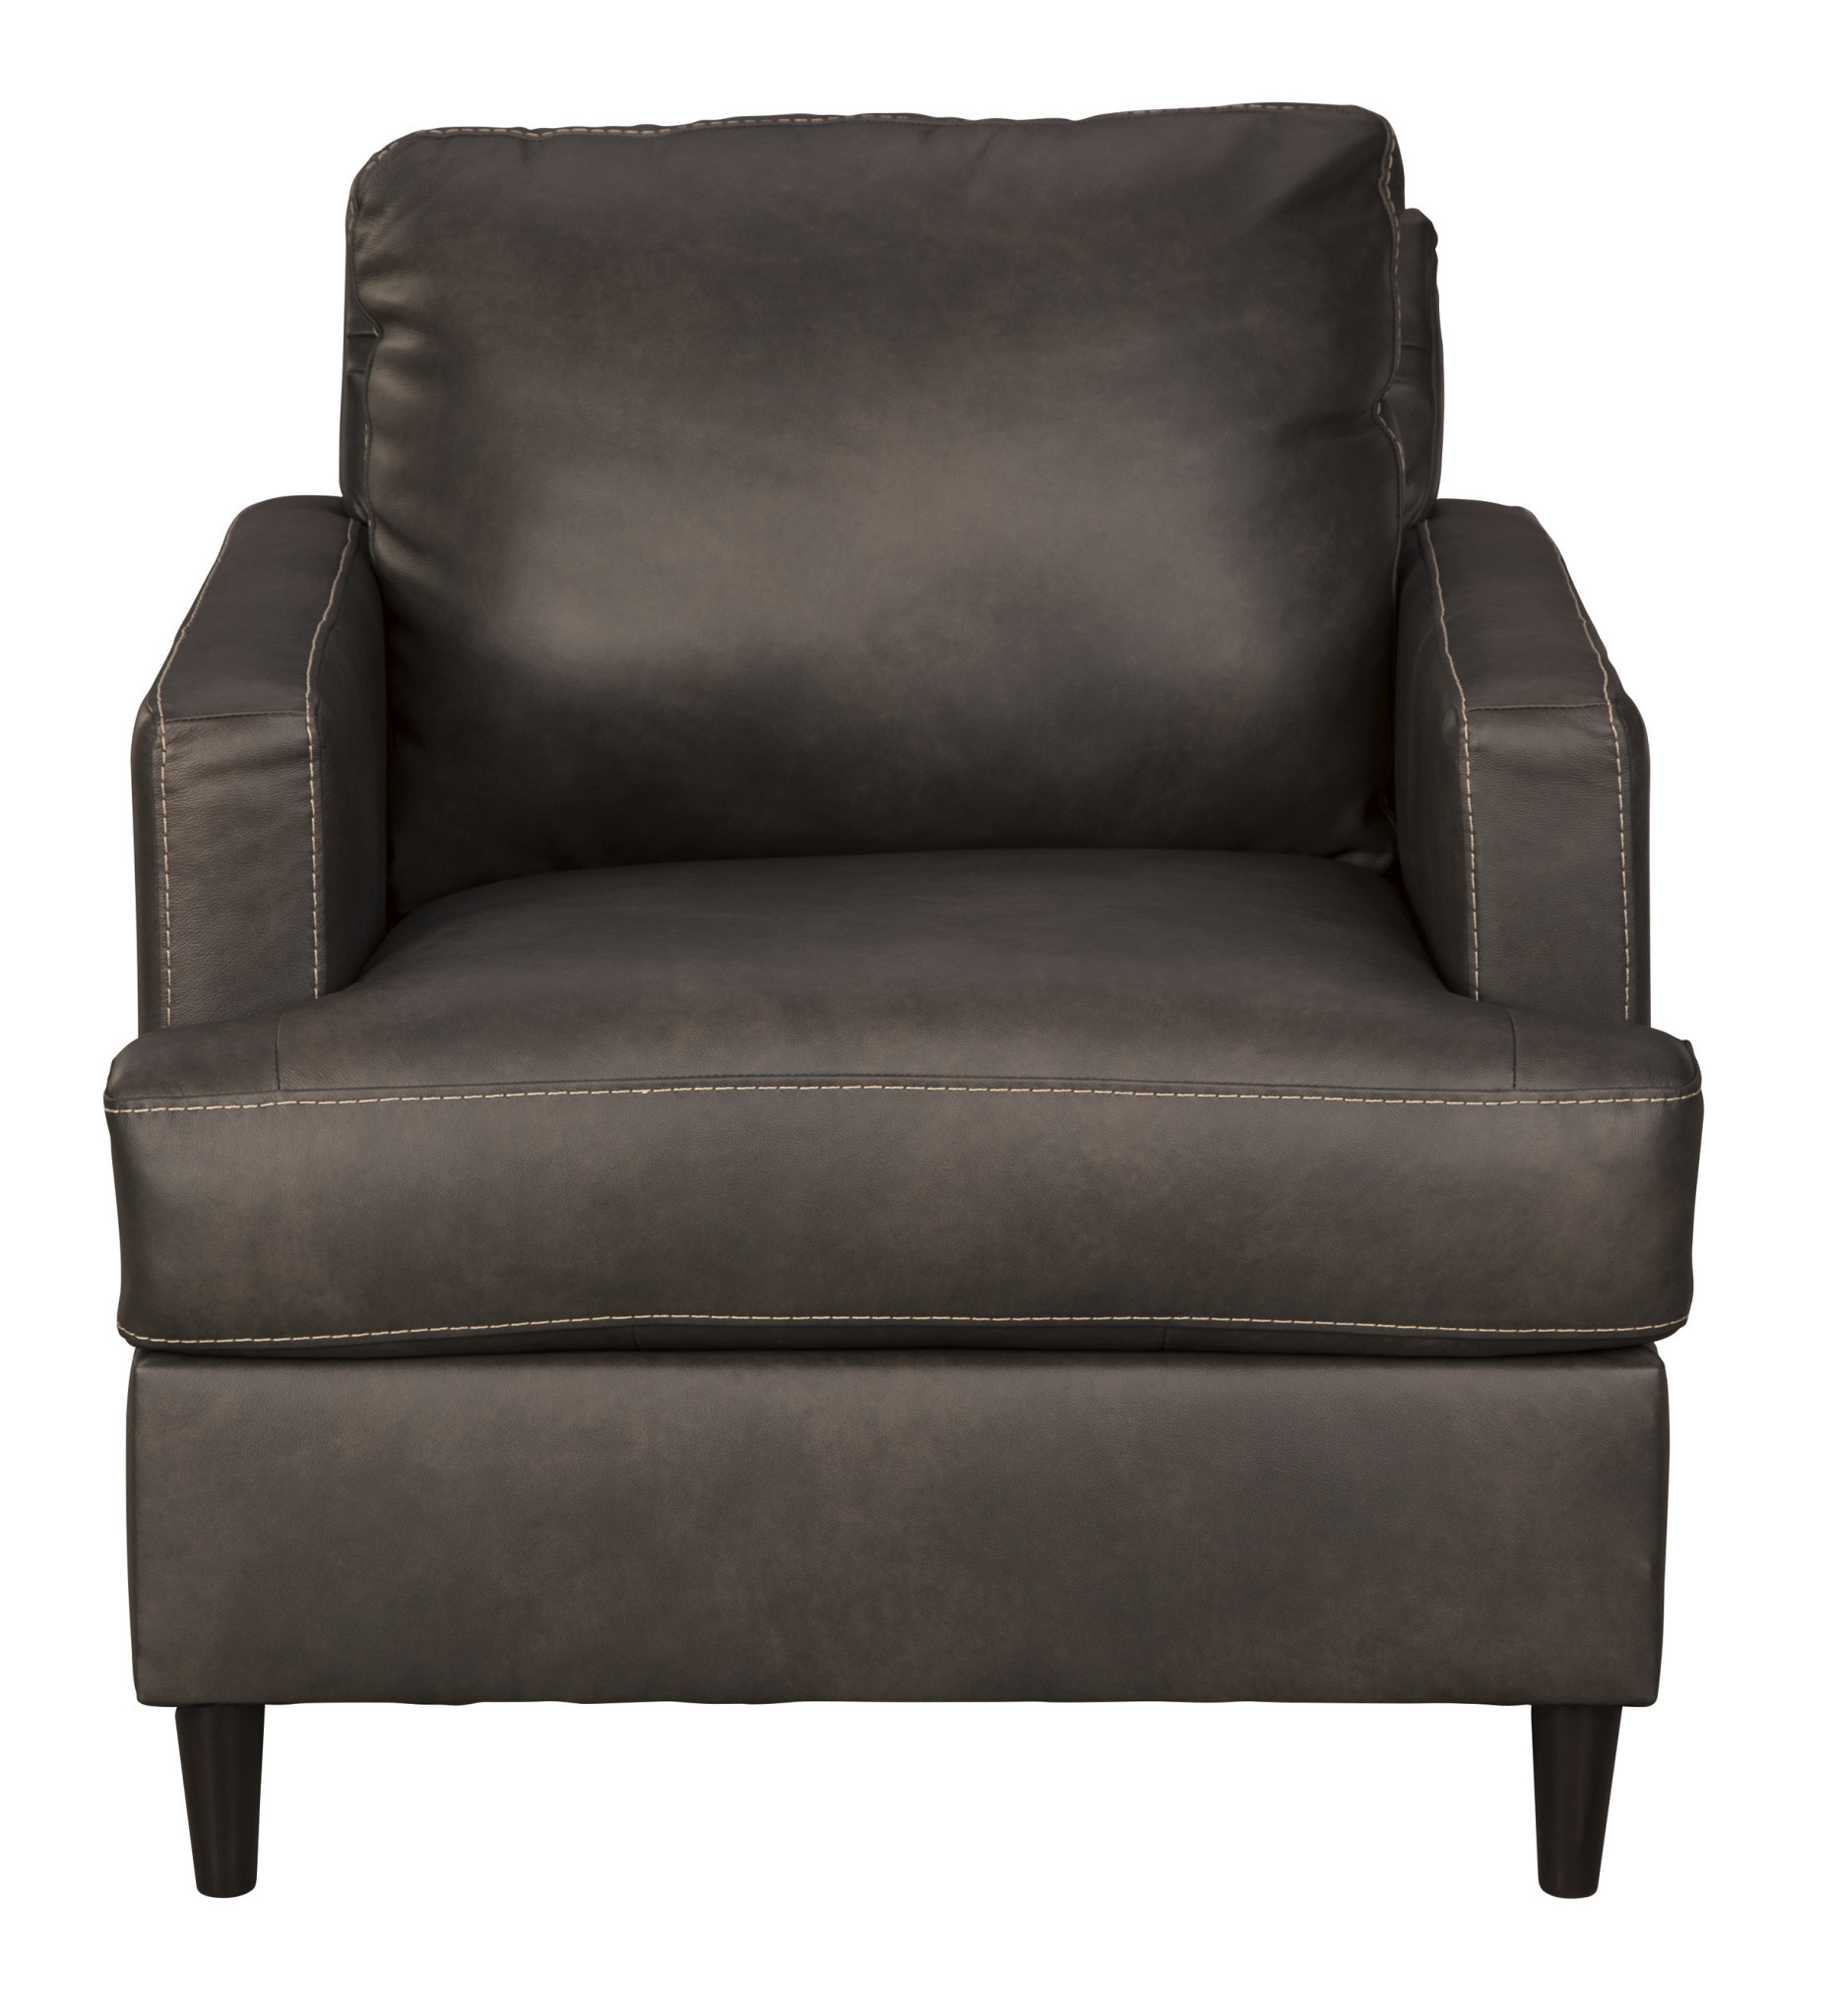 "Signature Design ""Hettinger"" Chair- Ash Color 4950120"